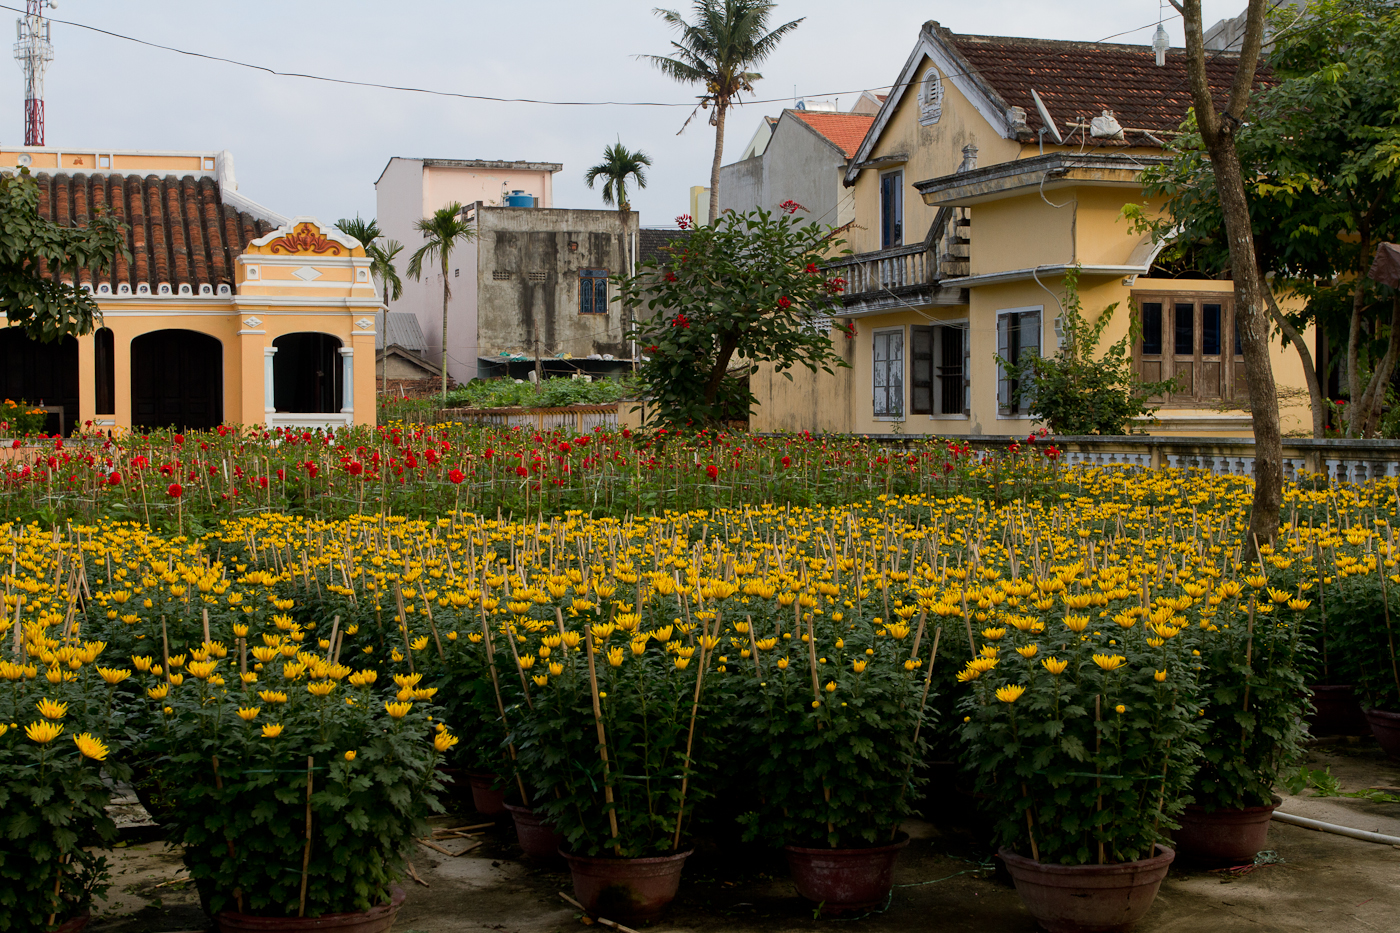 Lots of yellow flowers on sale for Tet, the lunar new year.